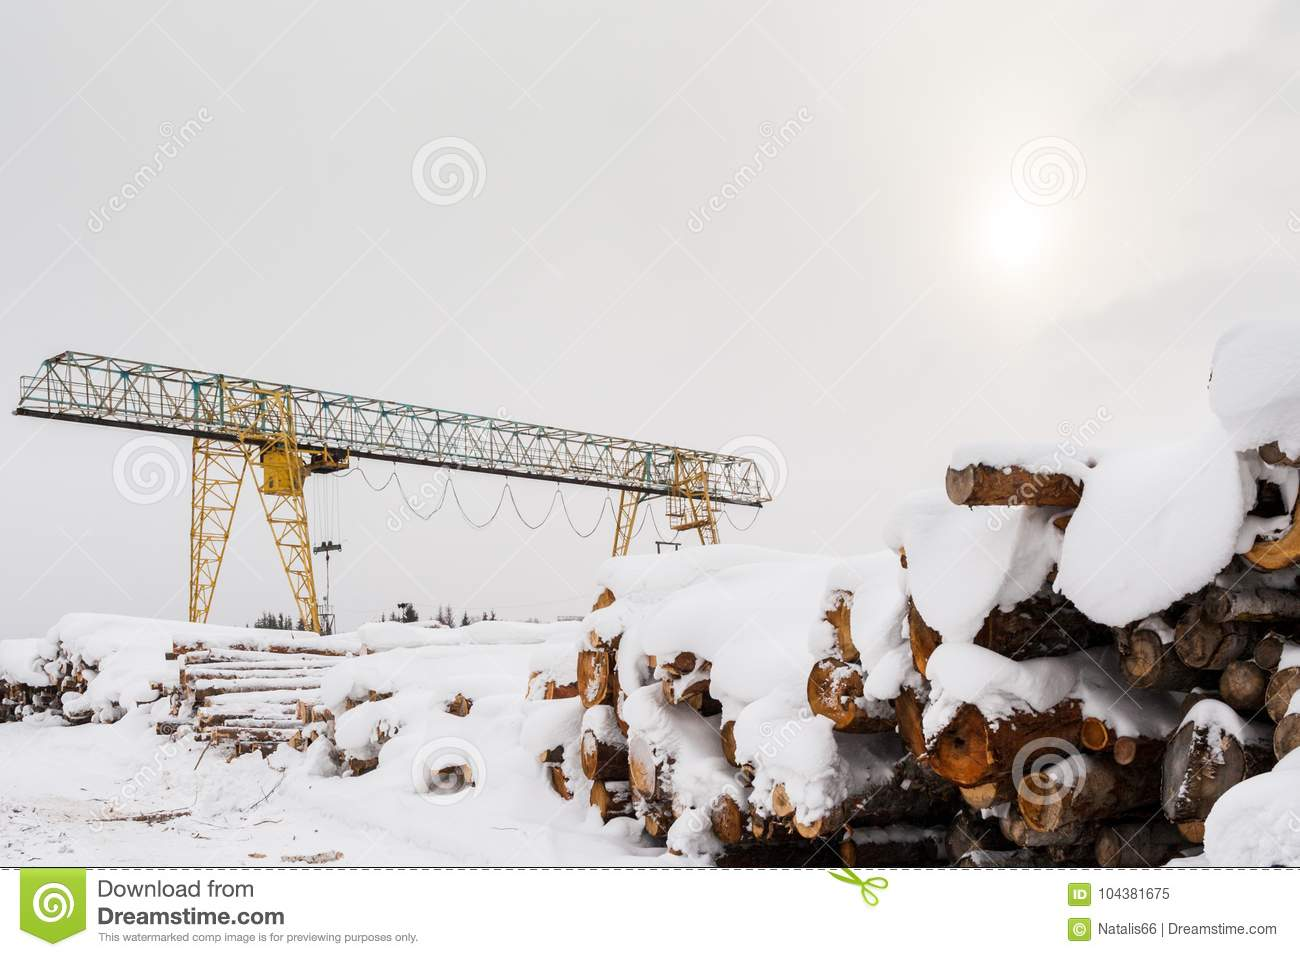 Snow-covered bunch of sawn logs and gantry crane in winter day.